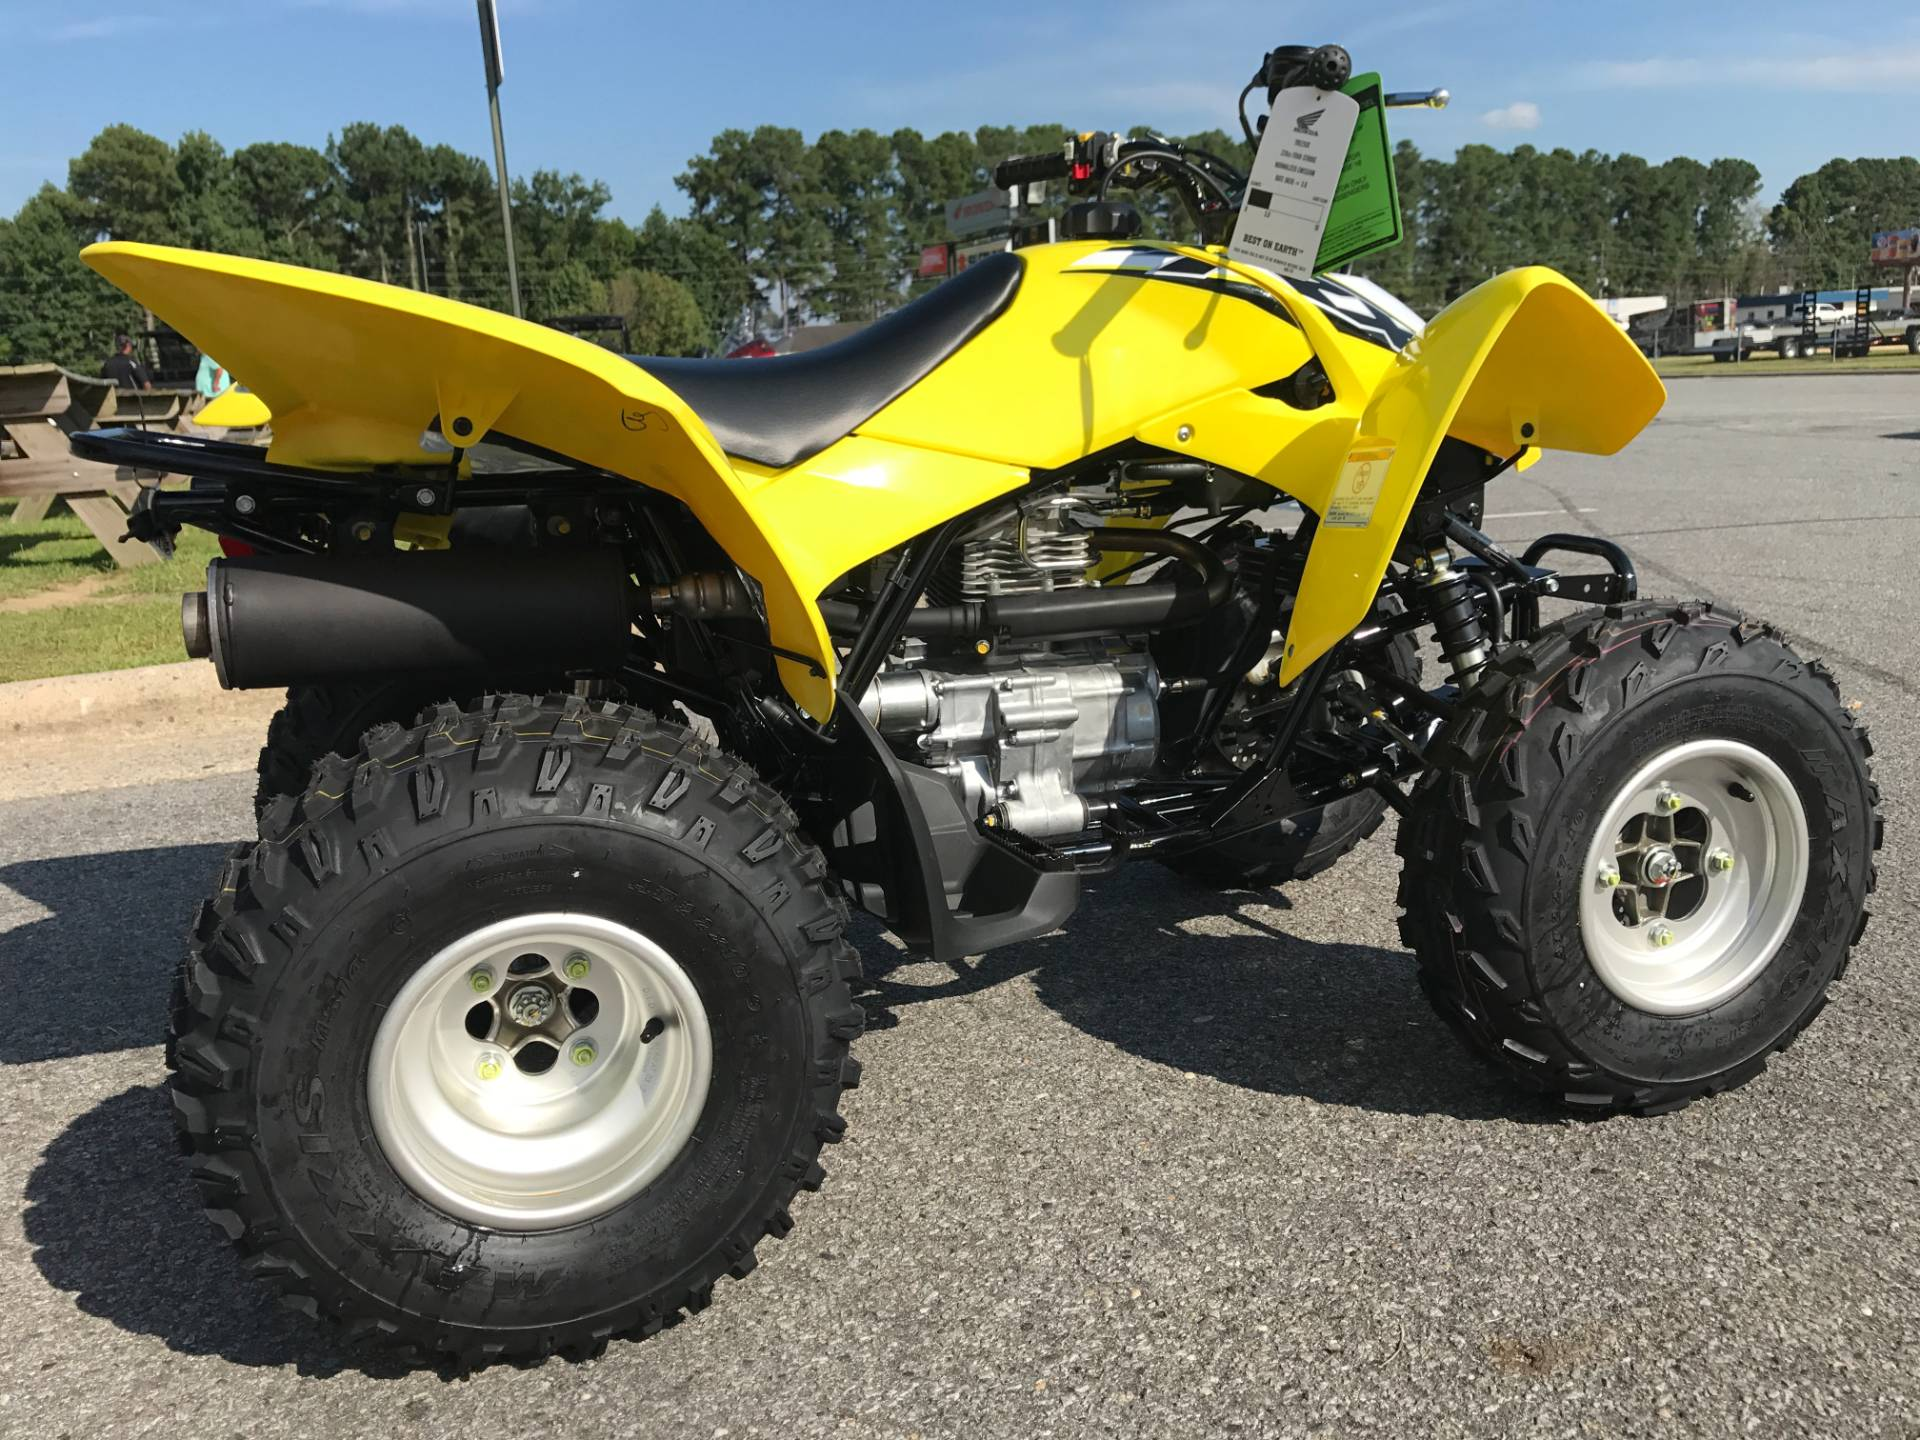 2018 honda trx250x.  honda 2018 honda trx250x in greenville north carolina to honda trx250x 8